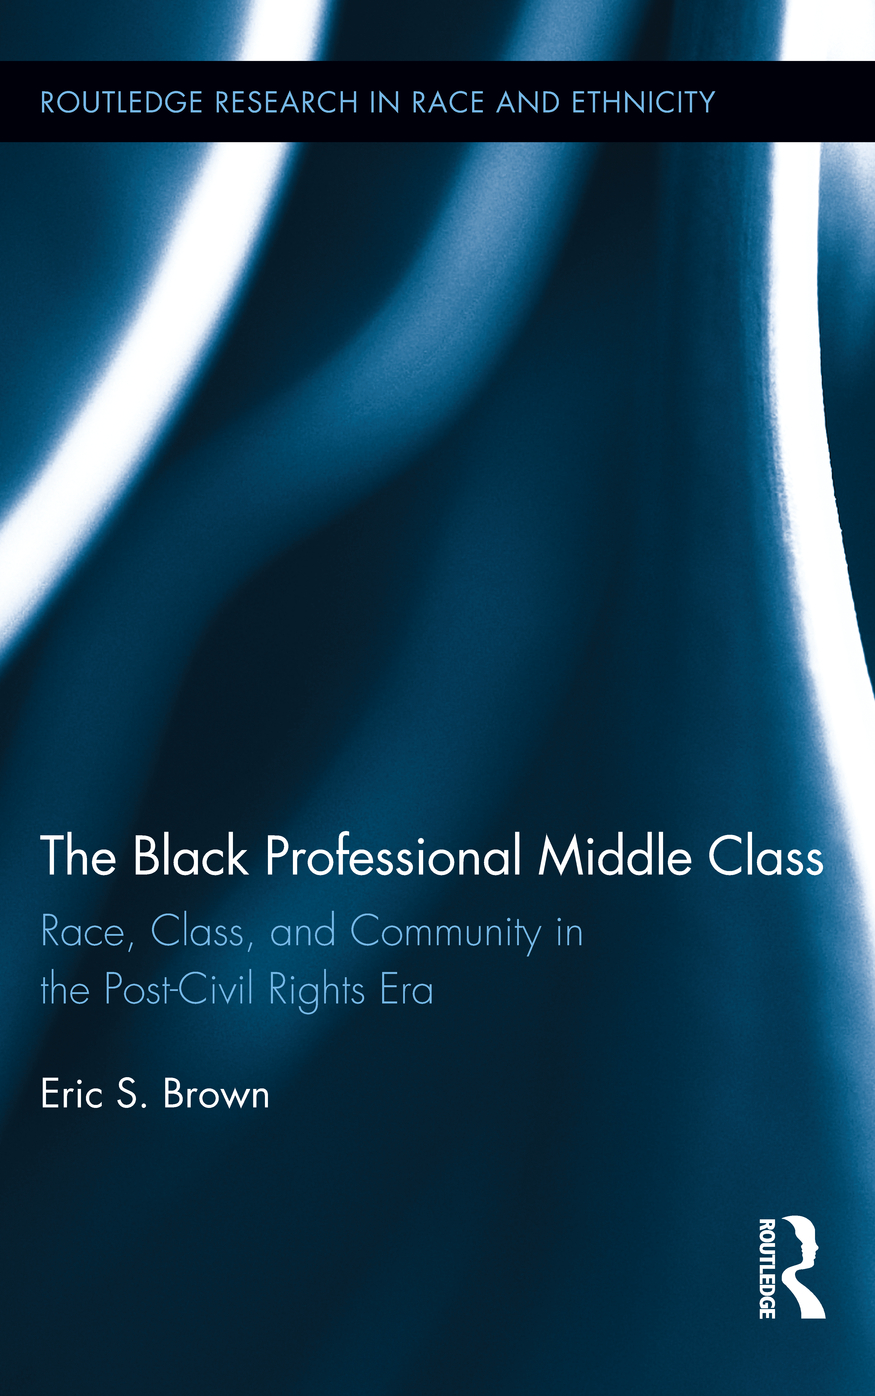 The Black Professional Middle Class: Race,  Class,  and Community in the Post-Civil Rights Era Race,  Class,  and Community in the Post-Civil Rights Era